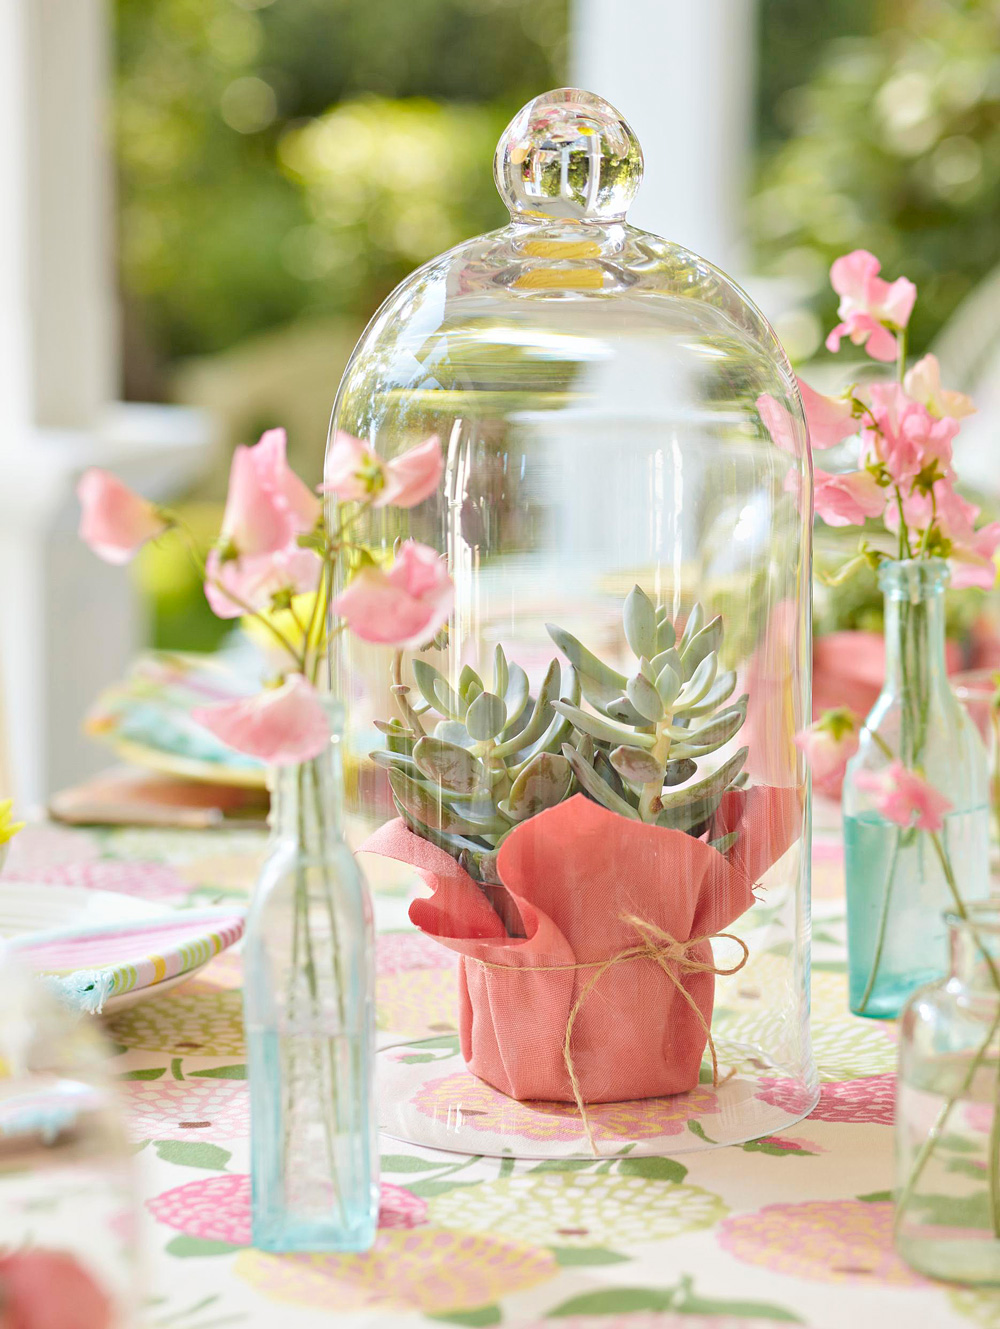 Make easy summer-inspired decor